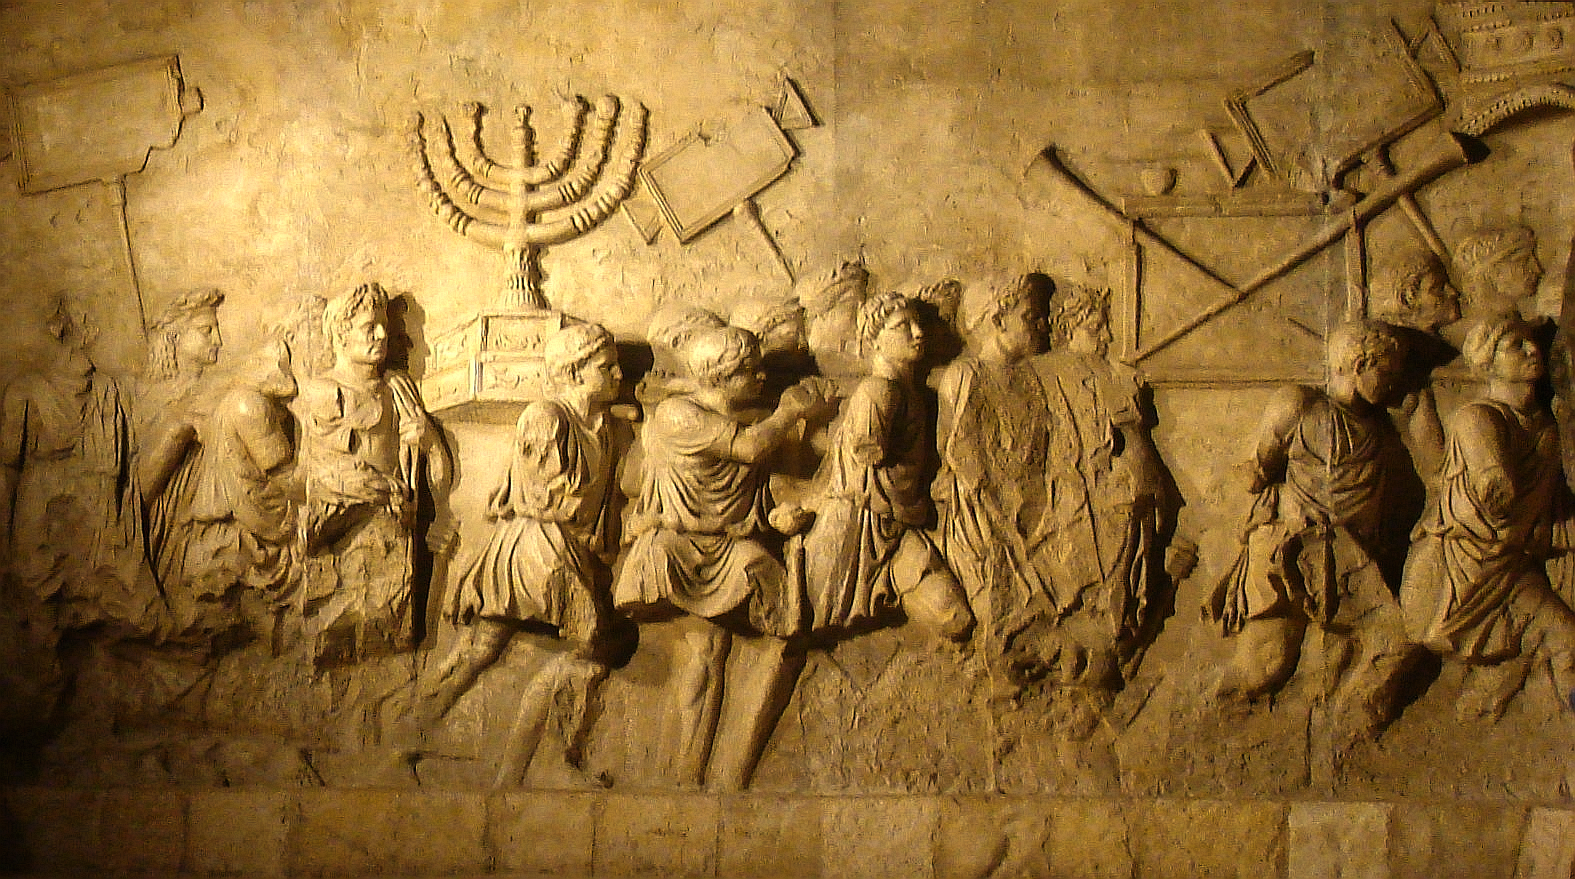 Image 2. Depiction of the Roman ... Sack of Jerusalem [of 70 CE] on the Arch of Titus in Rome (copy from Beth Hatefutsoth). The procession features the Menorah and other vessels taken from the Second Temple. Photo is a derivative work: Steerpike (talk), Arc_de_Triumph_copy.jpg : user: בית השלום.